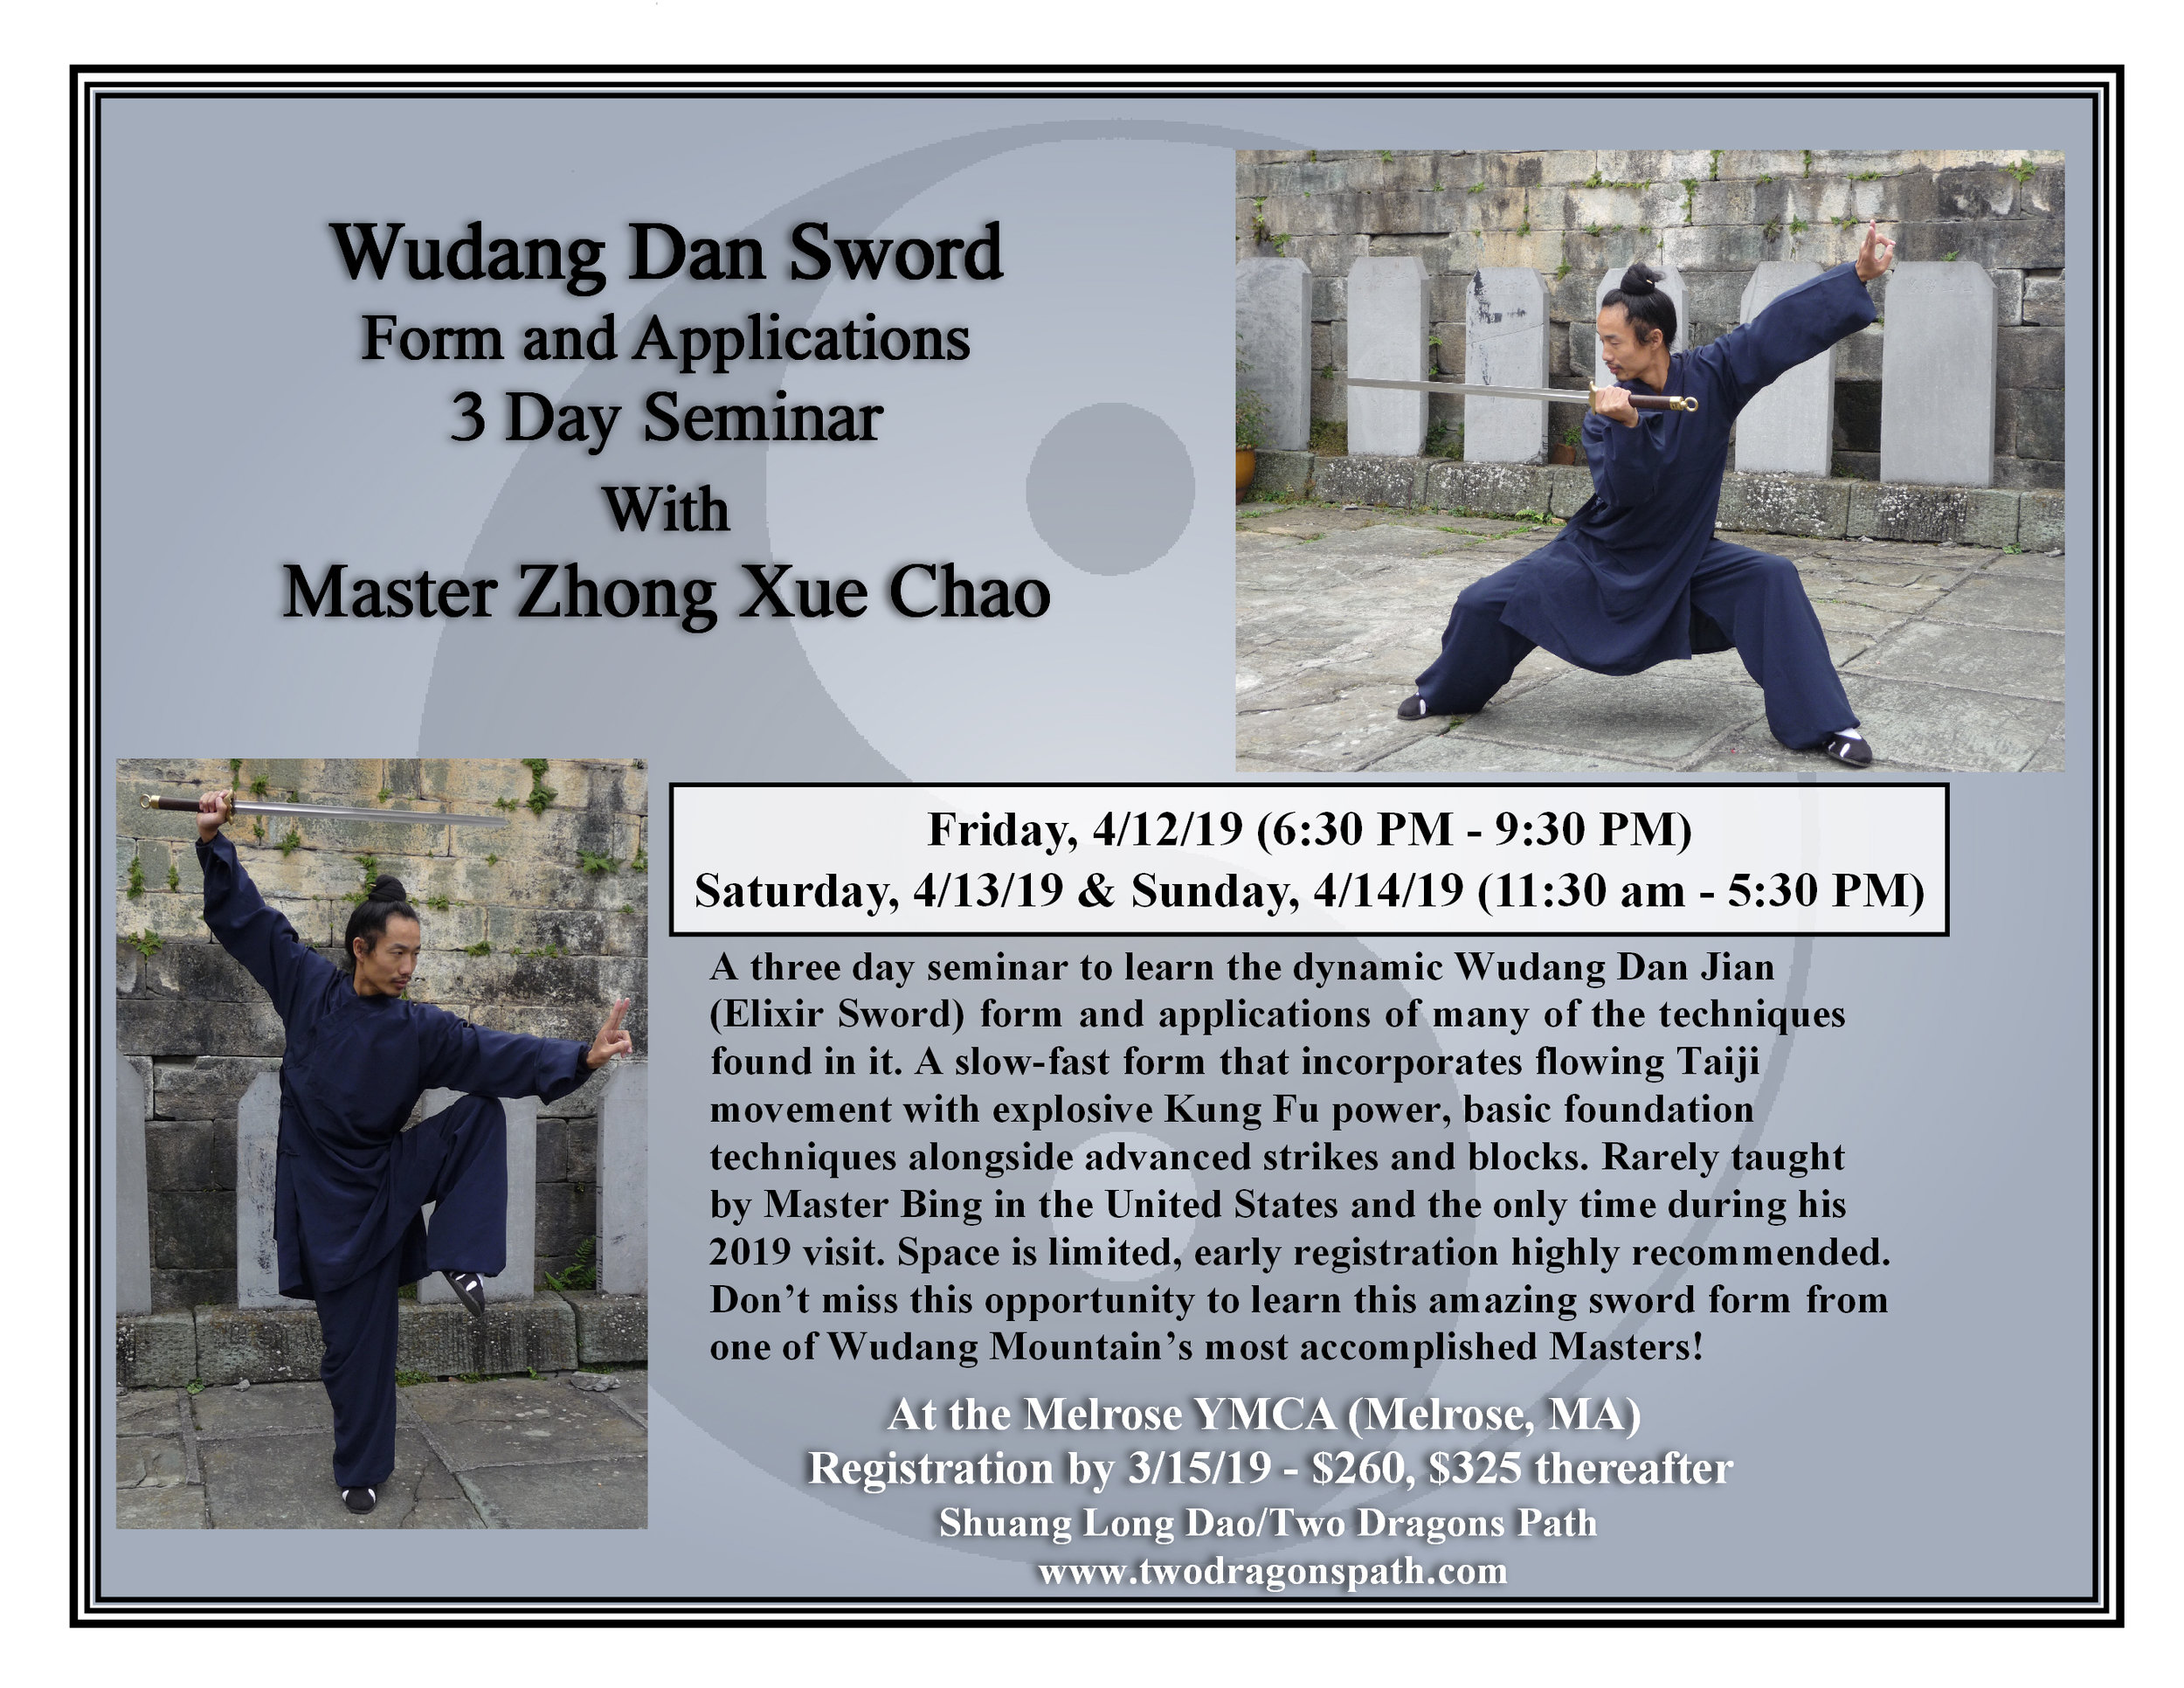 Wudang Dan Sword with Zhong XueChao